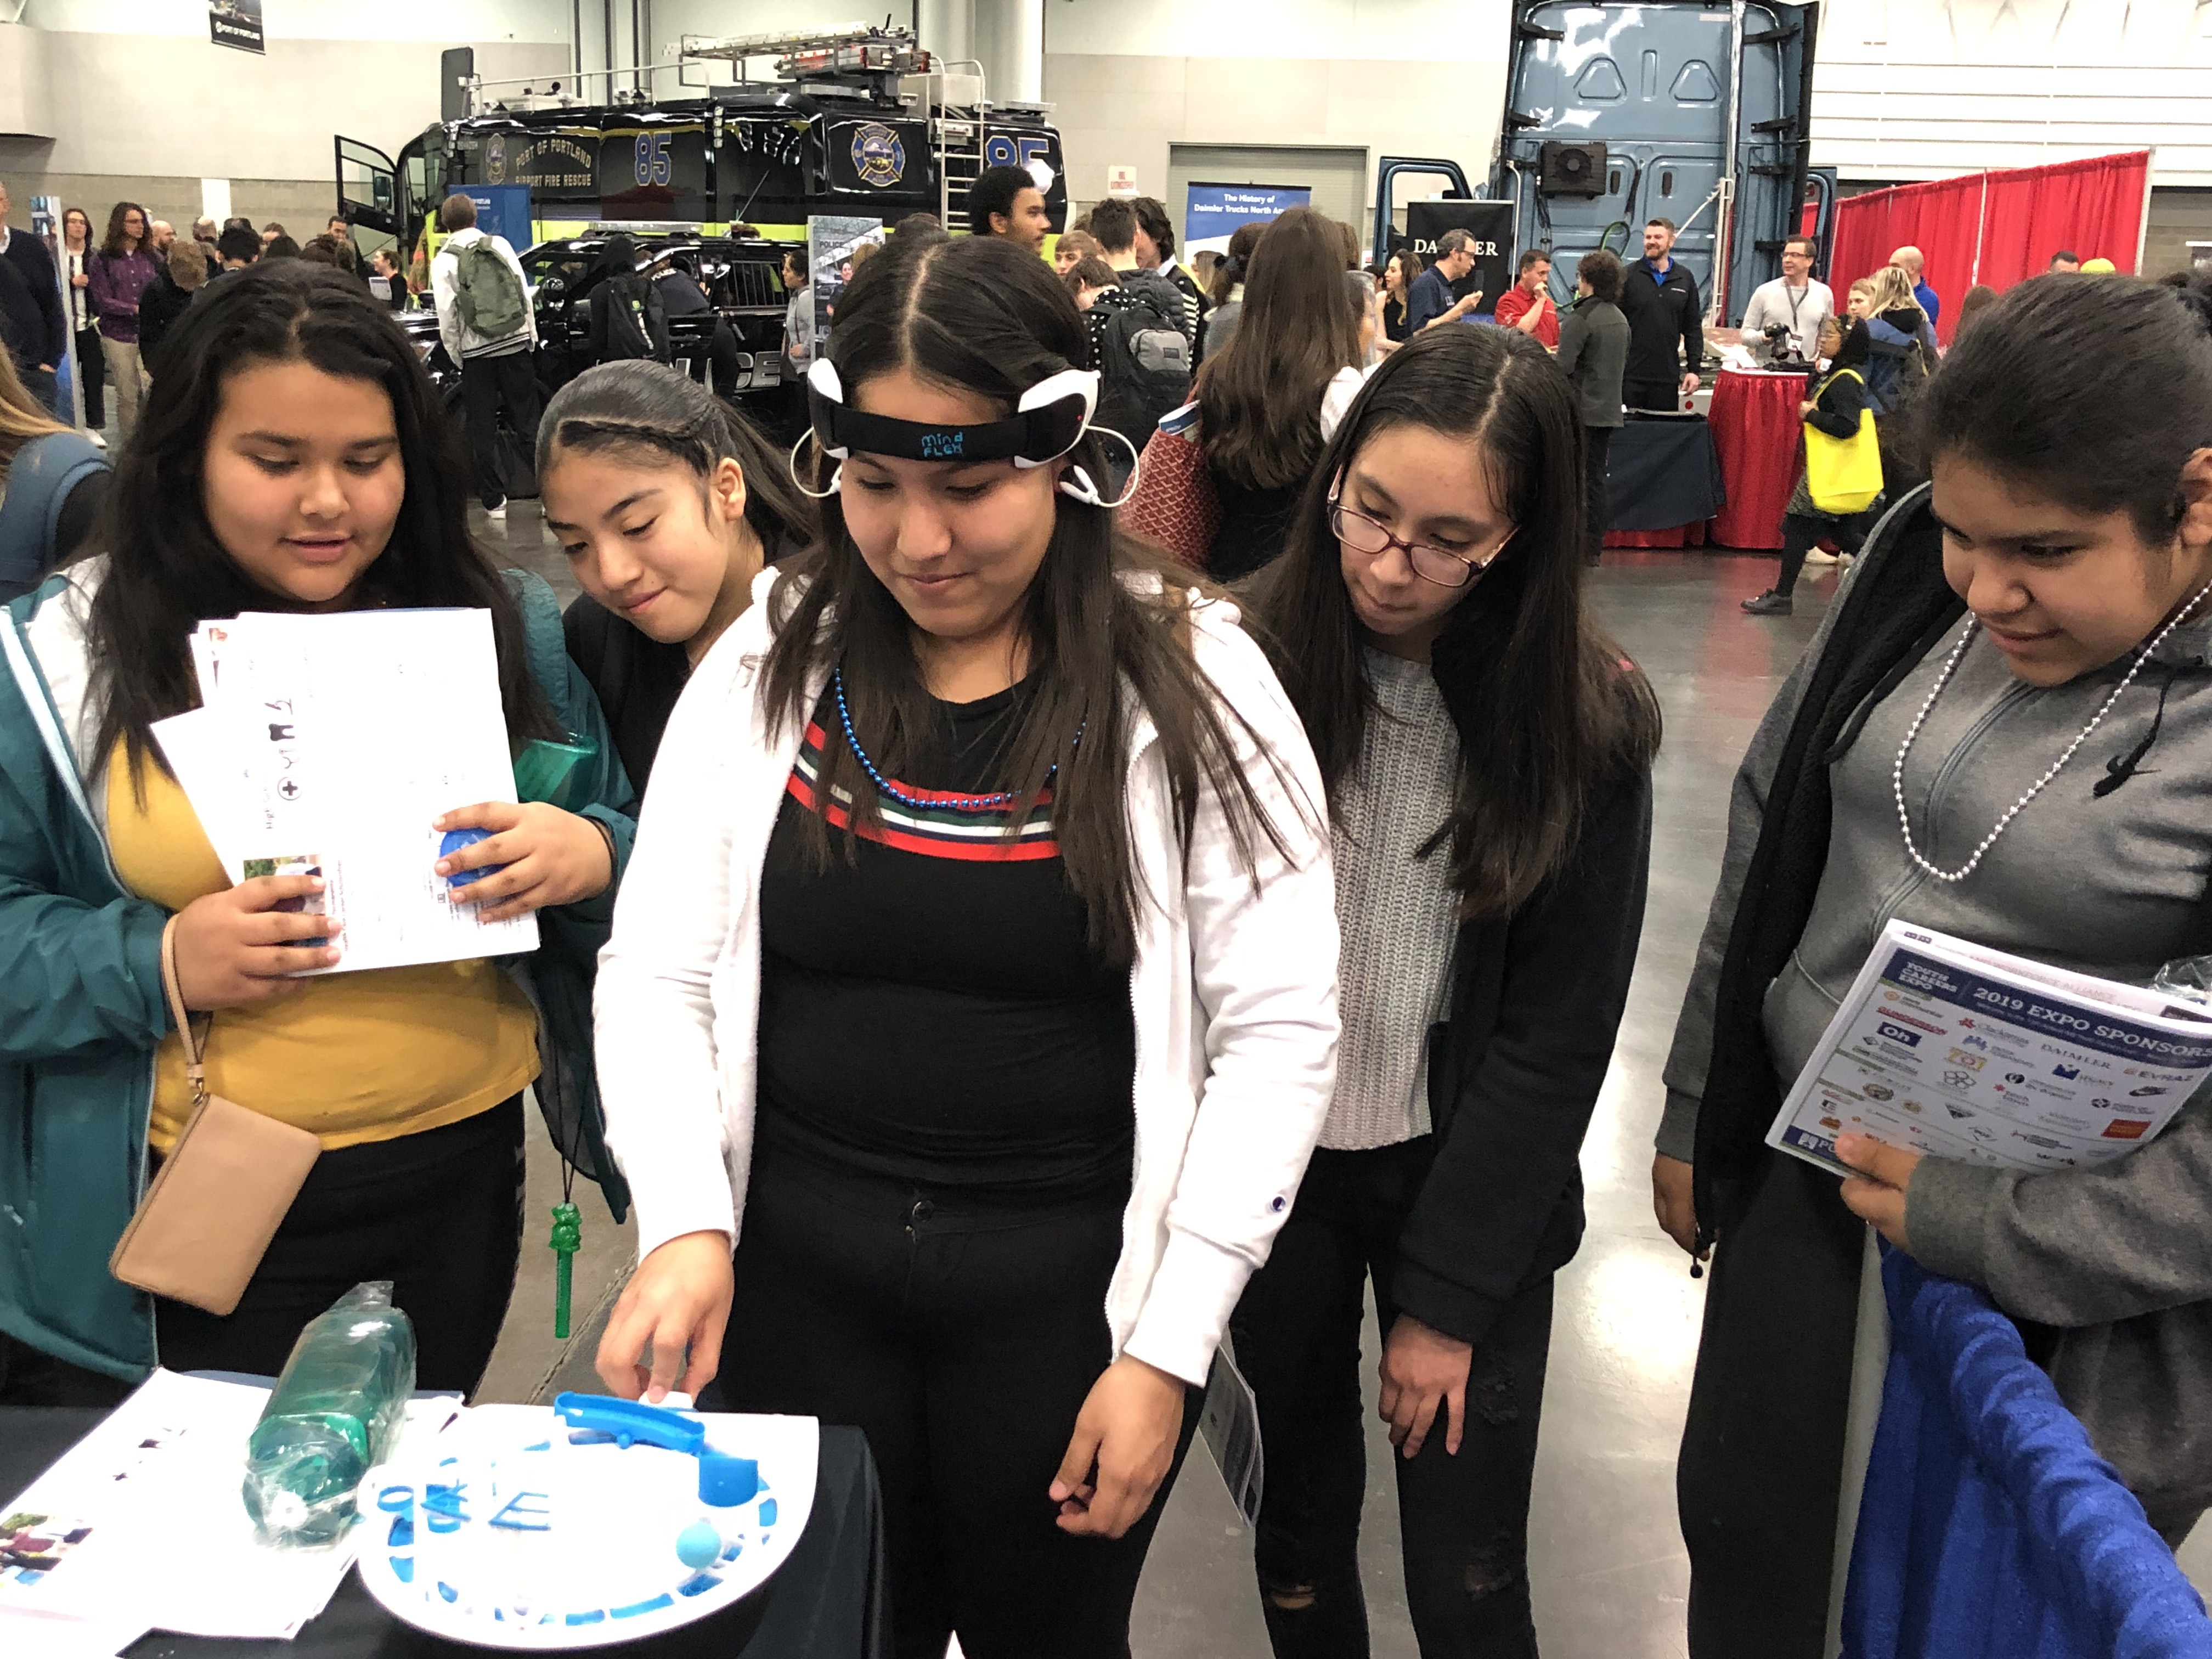 Students visit the YES! booth to play a mind-control game at the NW Youth Expo